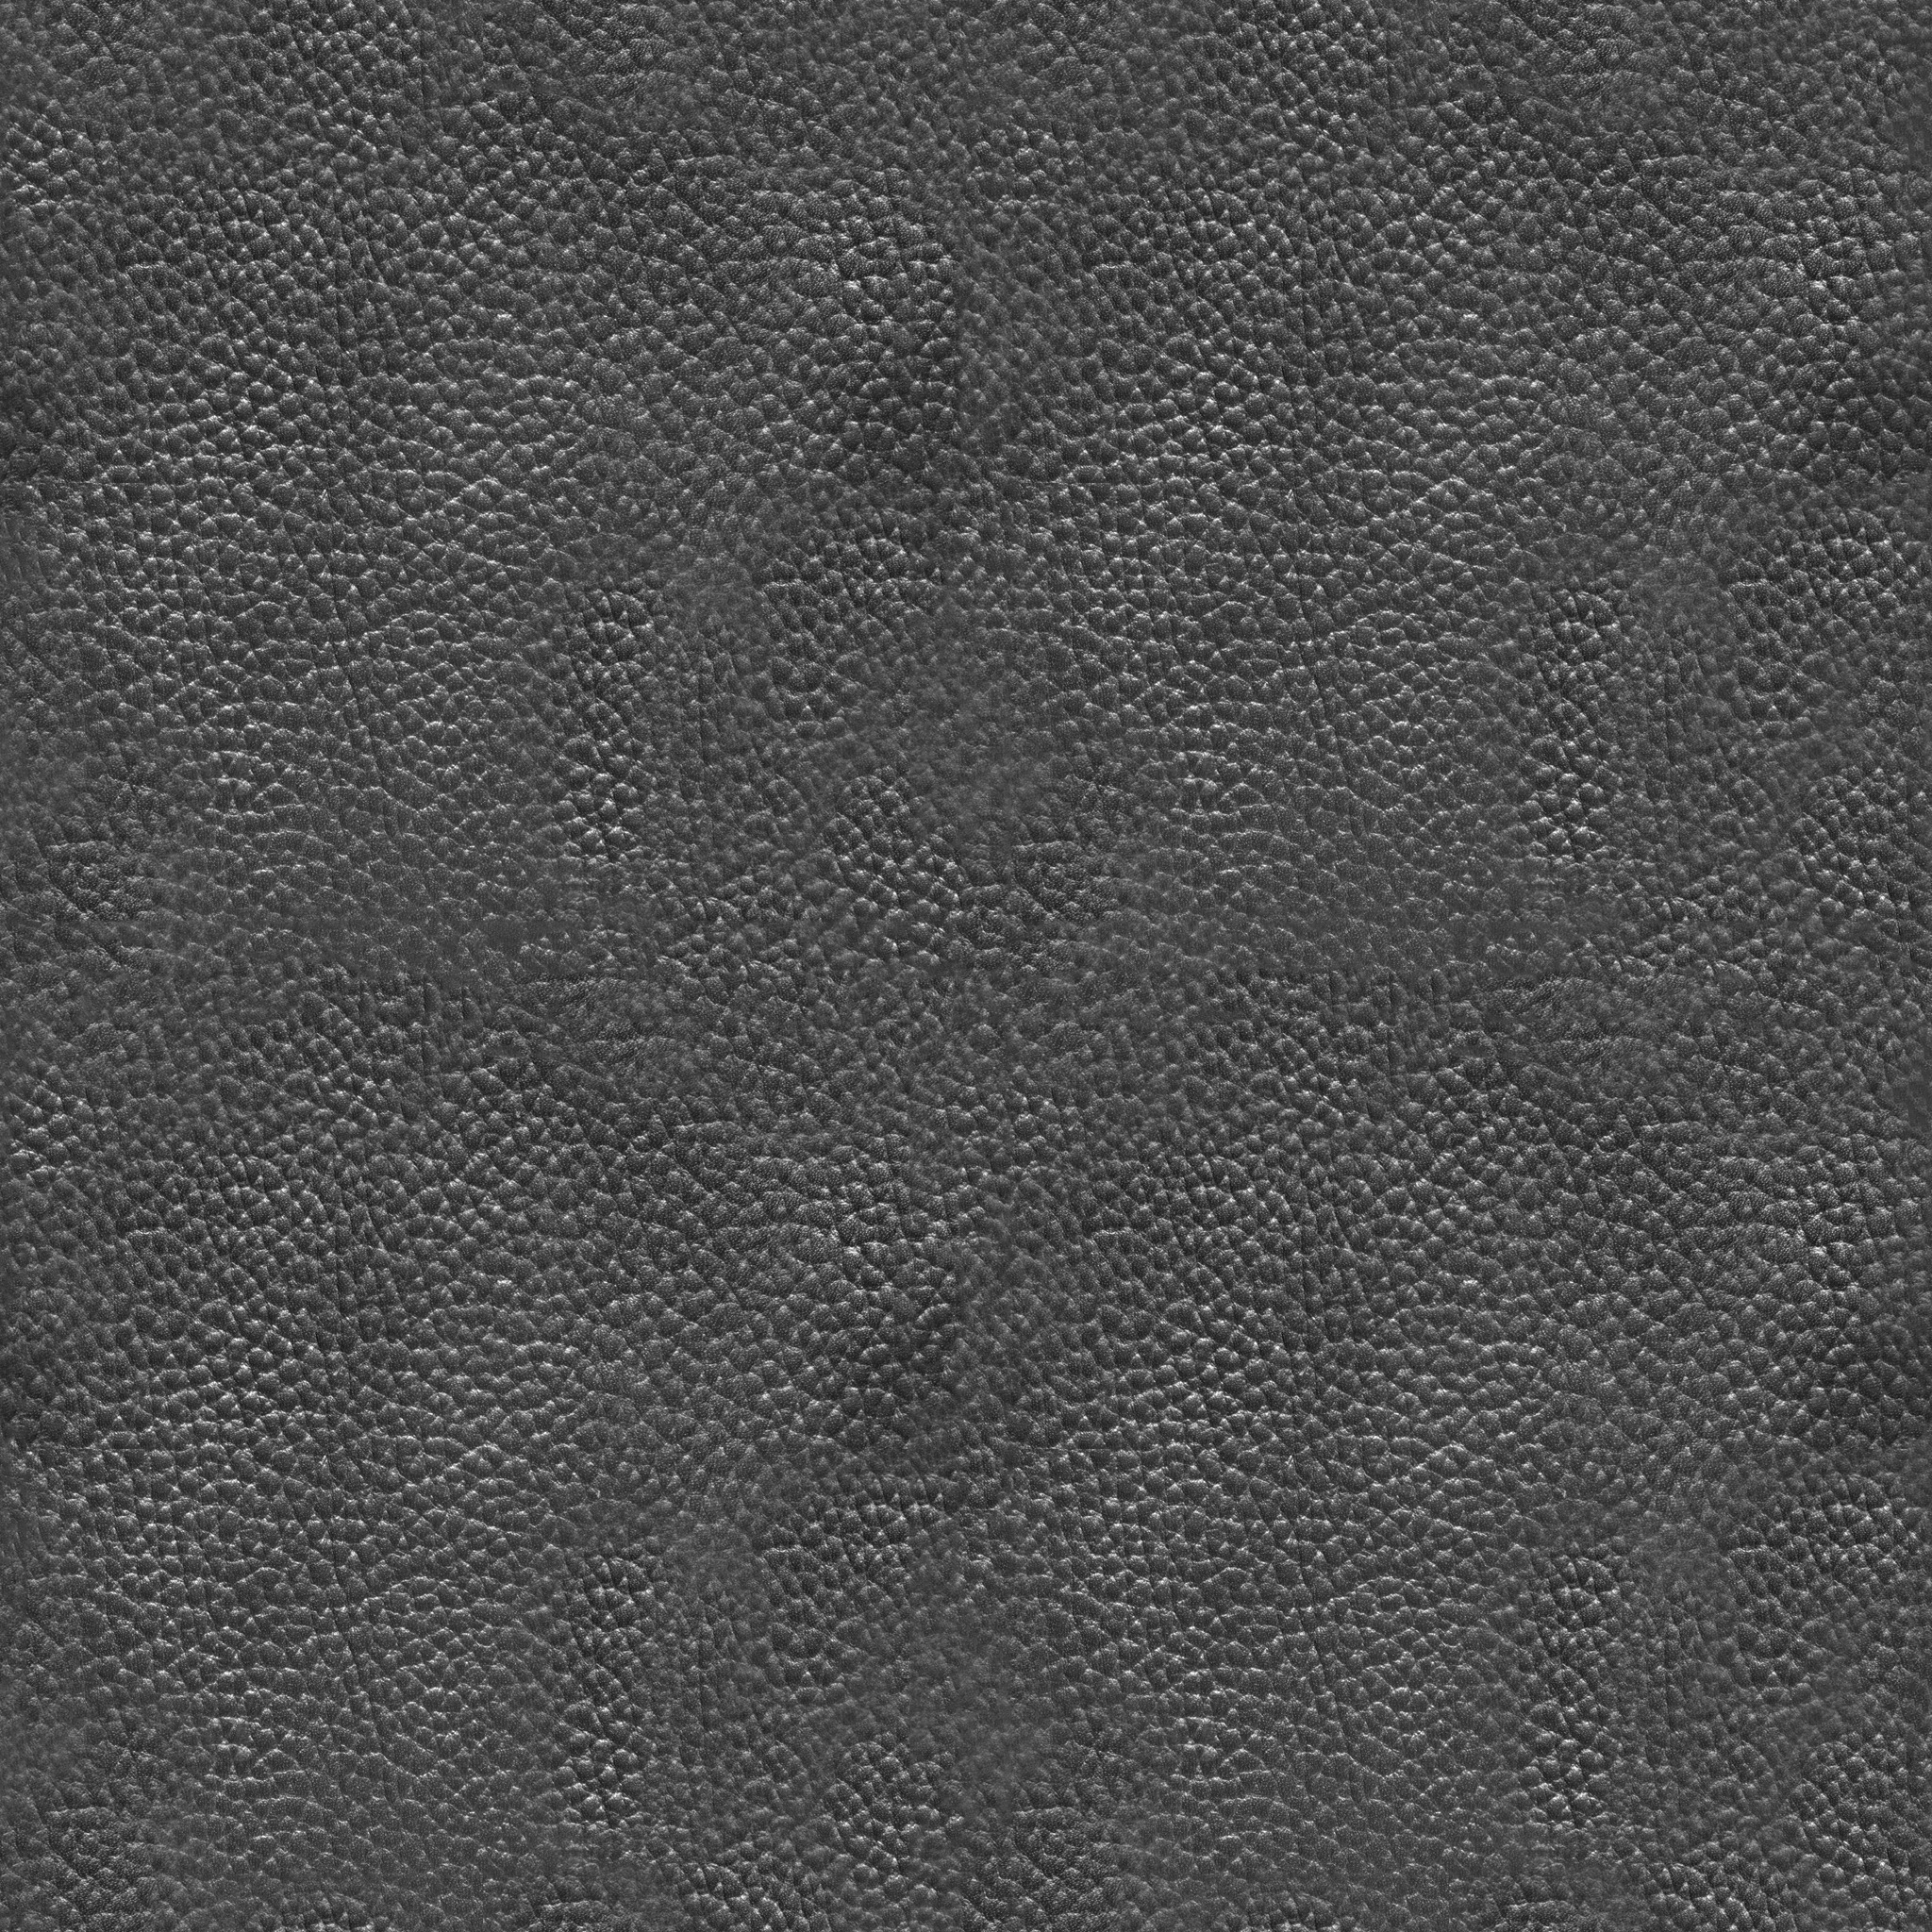 Seamless Black Texture Png & Free Seamless Black Texture ...Black Leather Texture Seamless